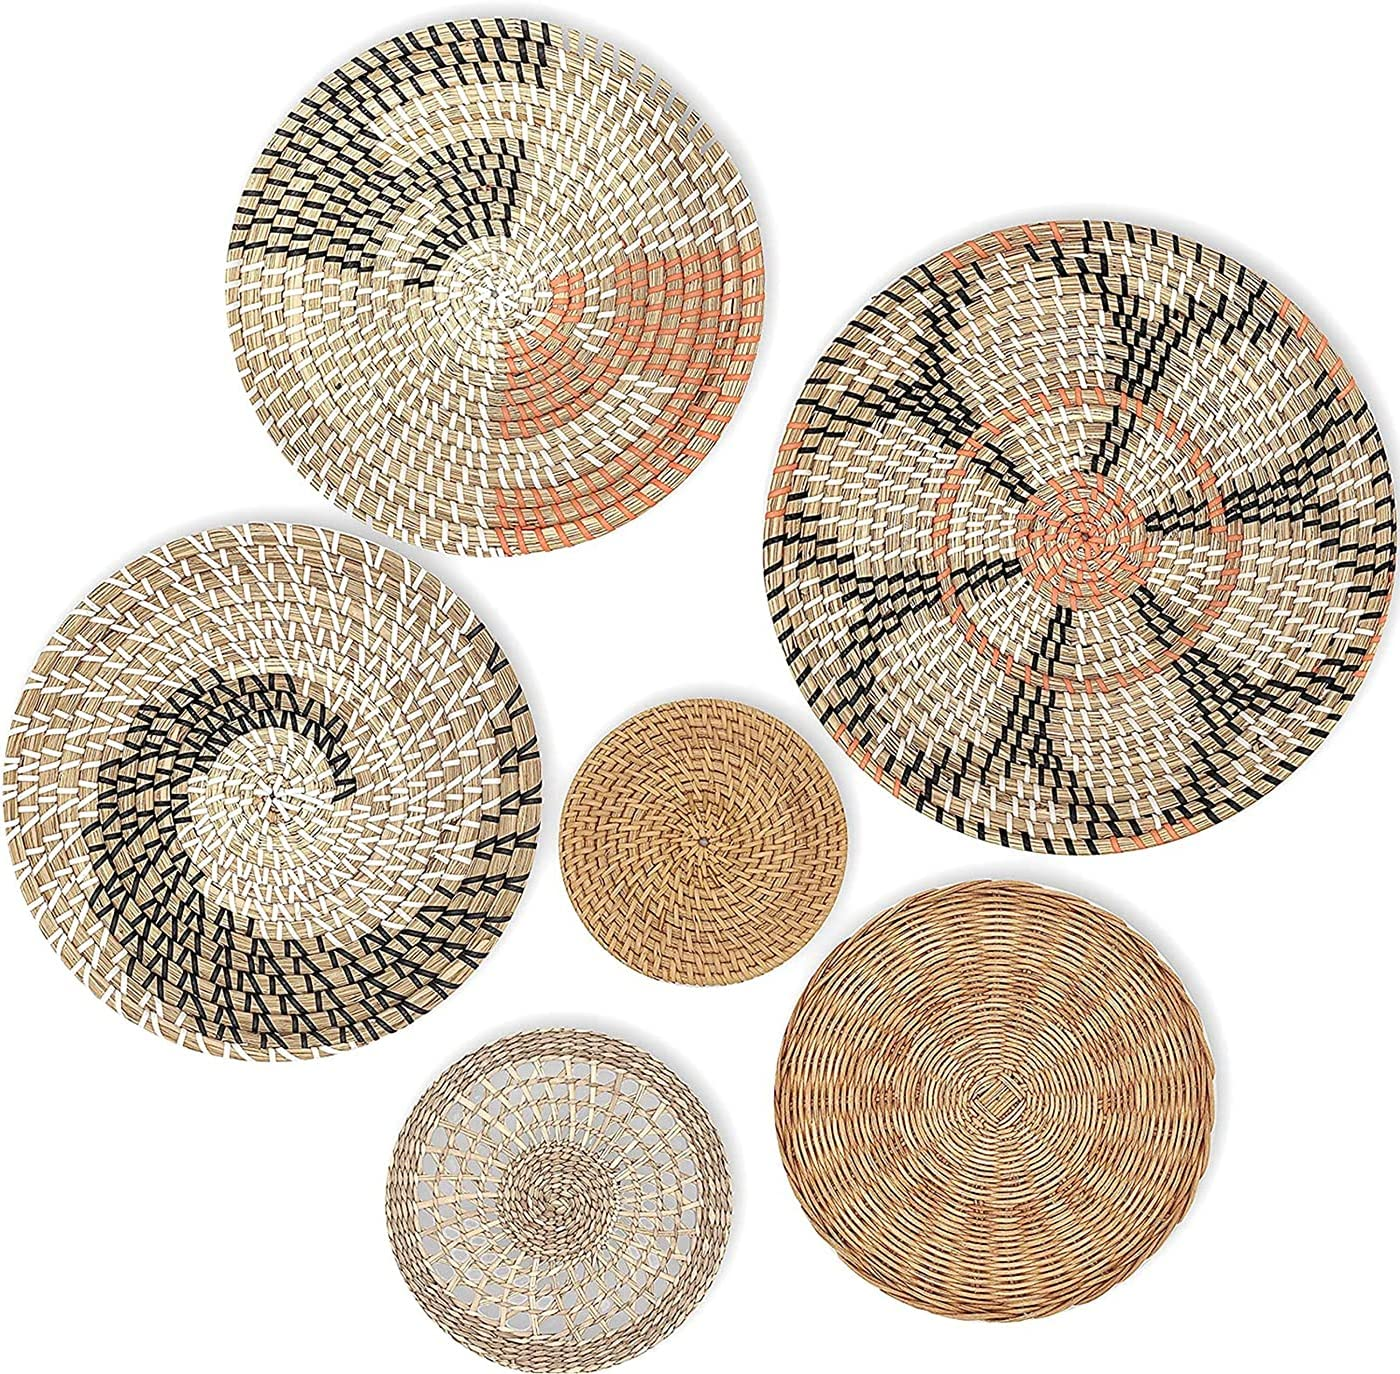 ZYUN Hanging Woven Wall Basket Decor Set of 6 Seagrass Baskets Wall Decor Rattan Decor for Boho Wall Art Round Wicker Decorative Tray Flat Basket for Coffee Table